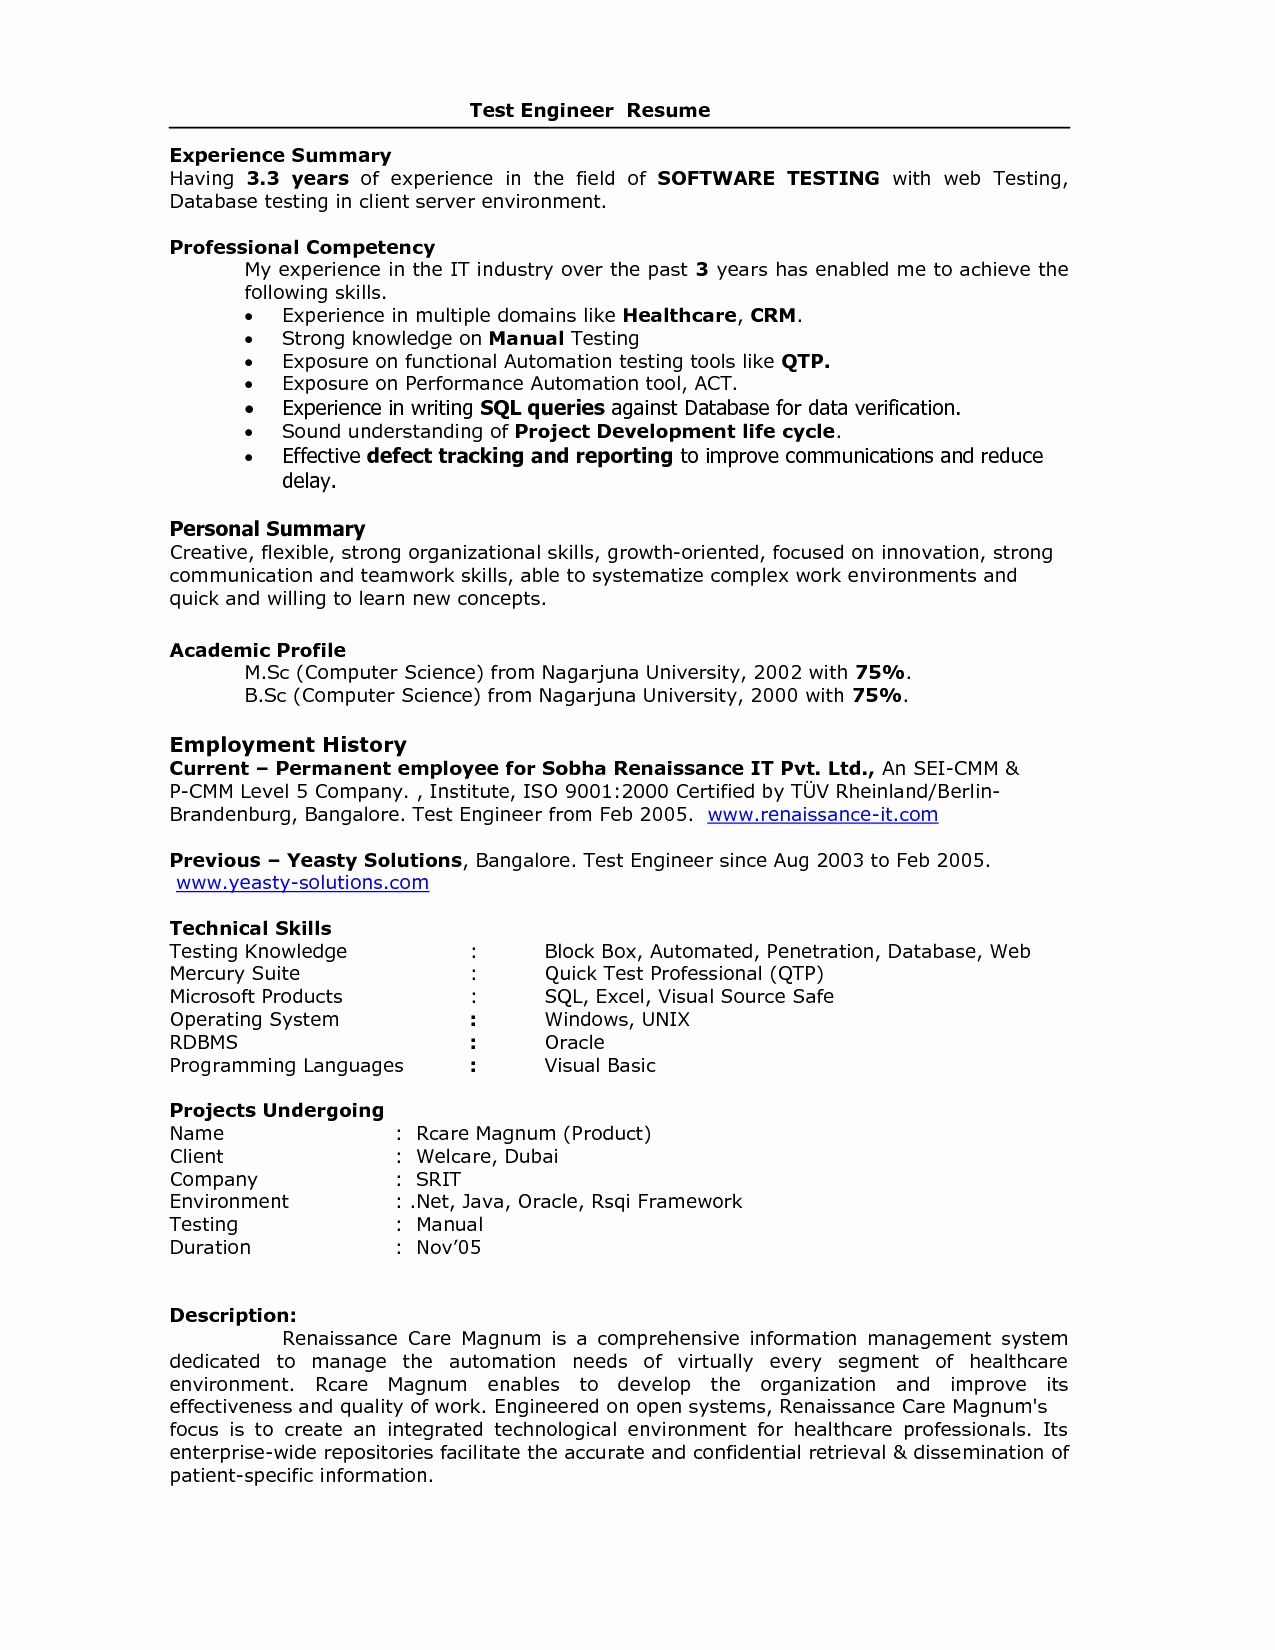 Resume Format For 5 Years Experience In Testing Experience Format